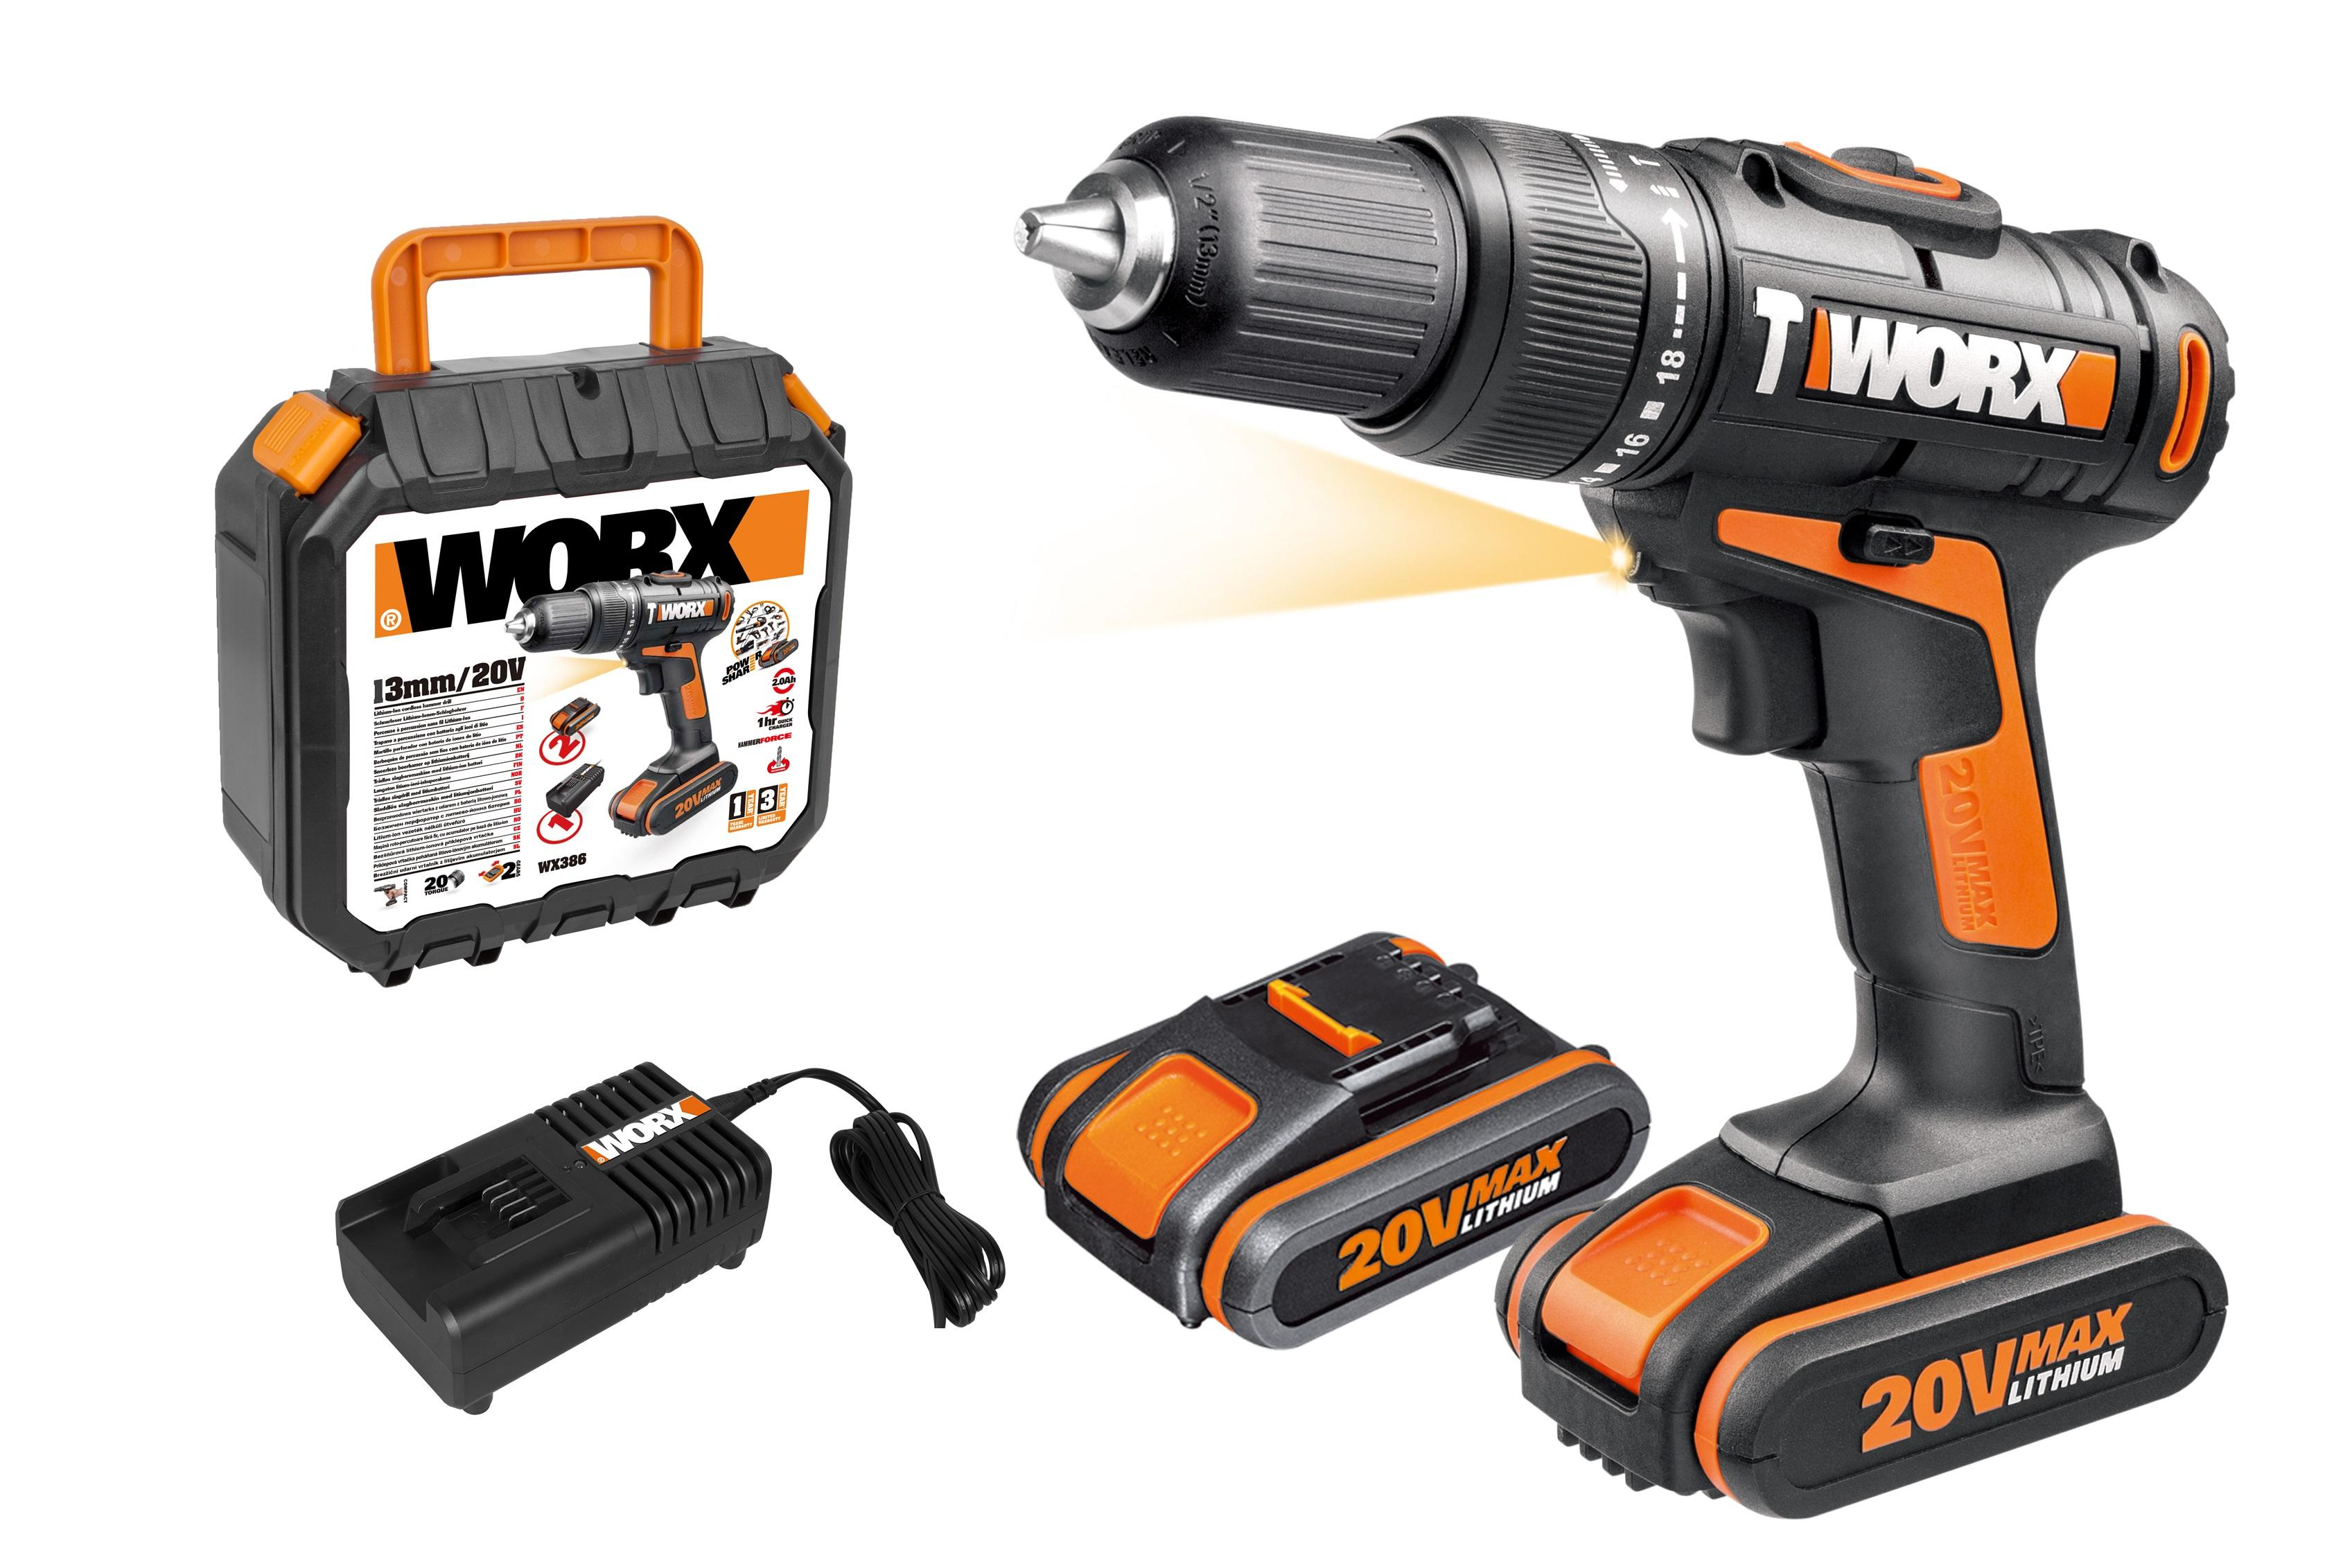 worx wx386 20v cordless hammer drill with x2 2 0ah battery packs diy tools. Black Bedroom Furniture Sets. Home Design Ideas